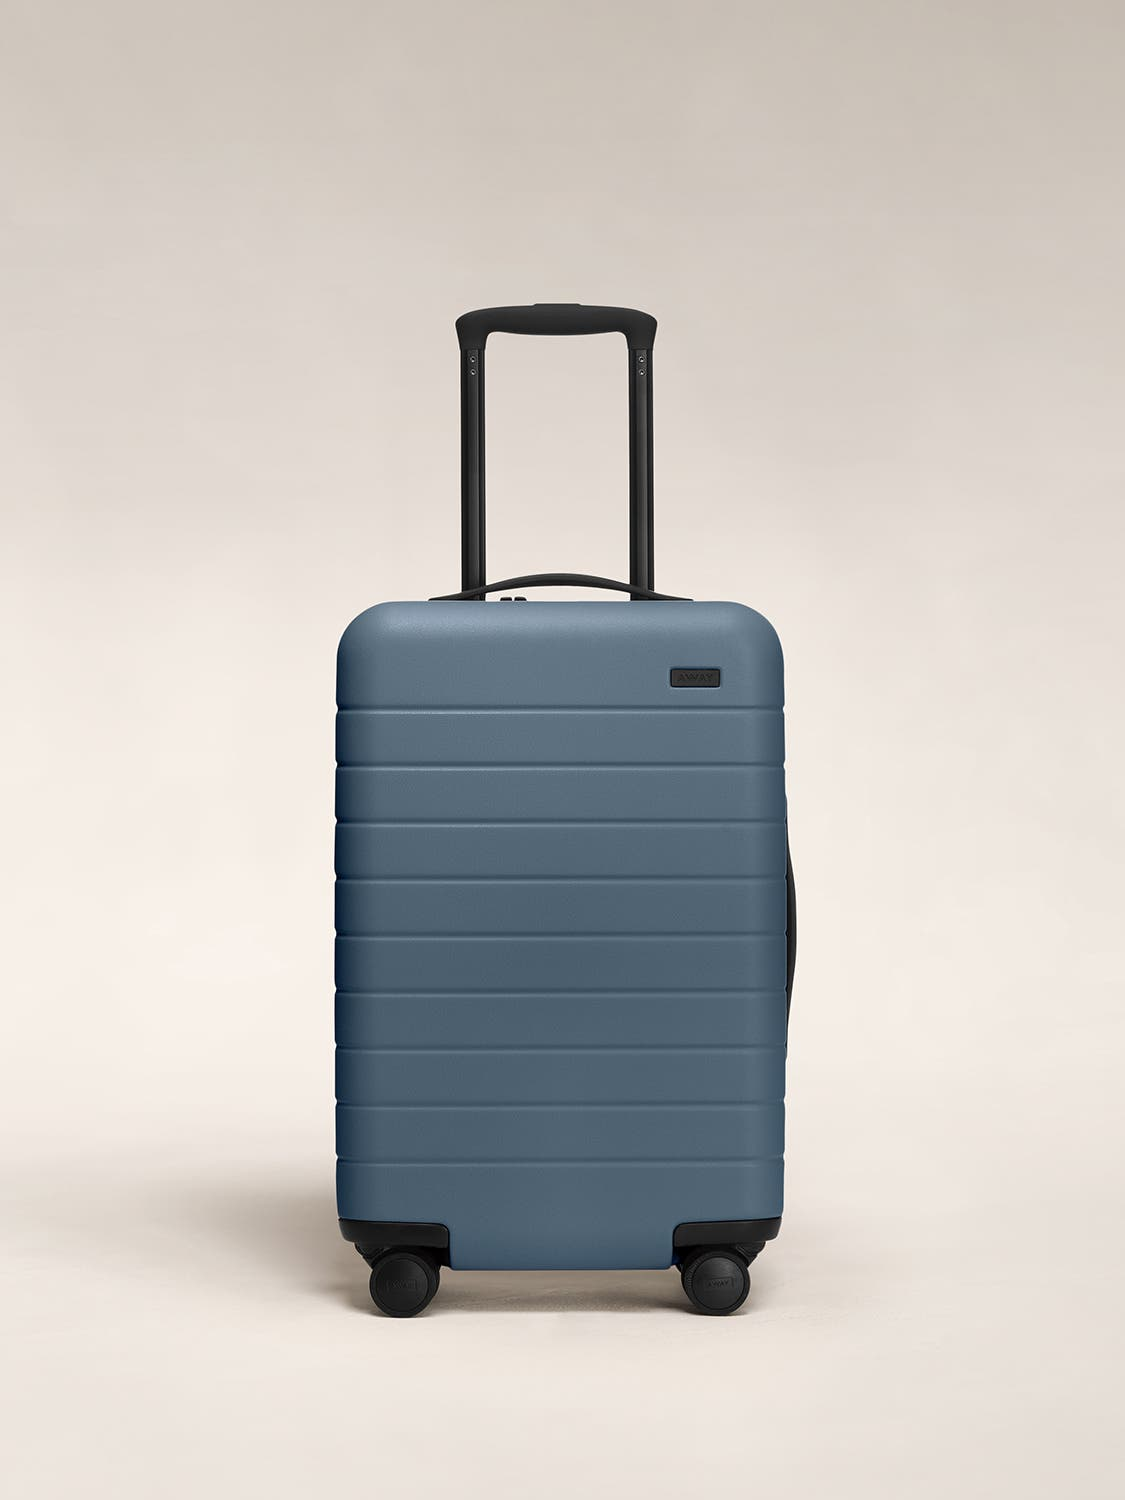 Front view of a coast blue carry-on suitcase with a hard shell, nylon front pocket, and telescopic handle pulled out.